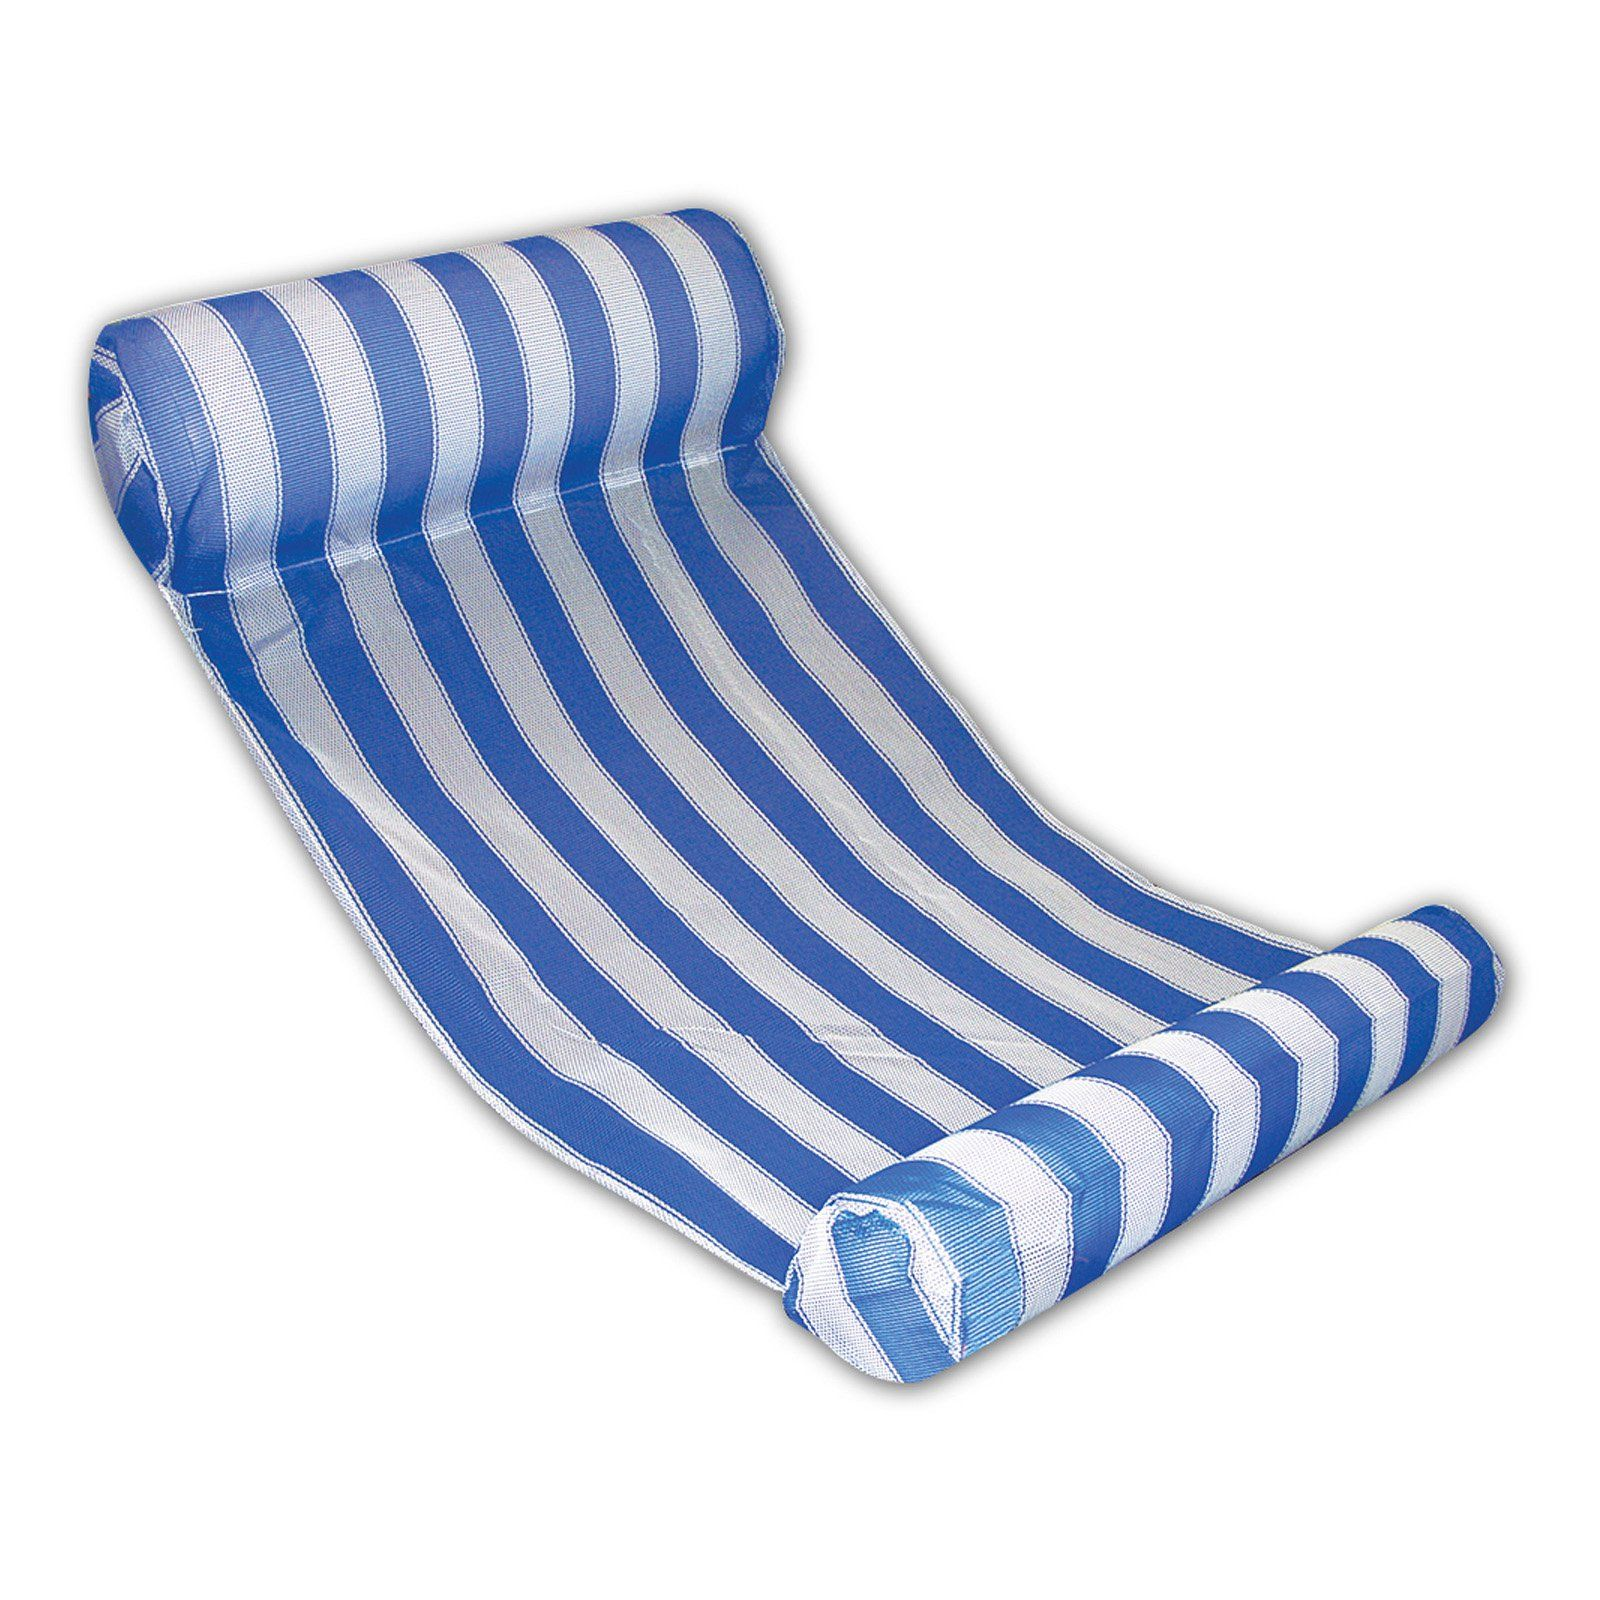 on lounger from of water unique hammock poolmaster lovely images summer pinterest view best